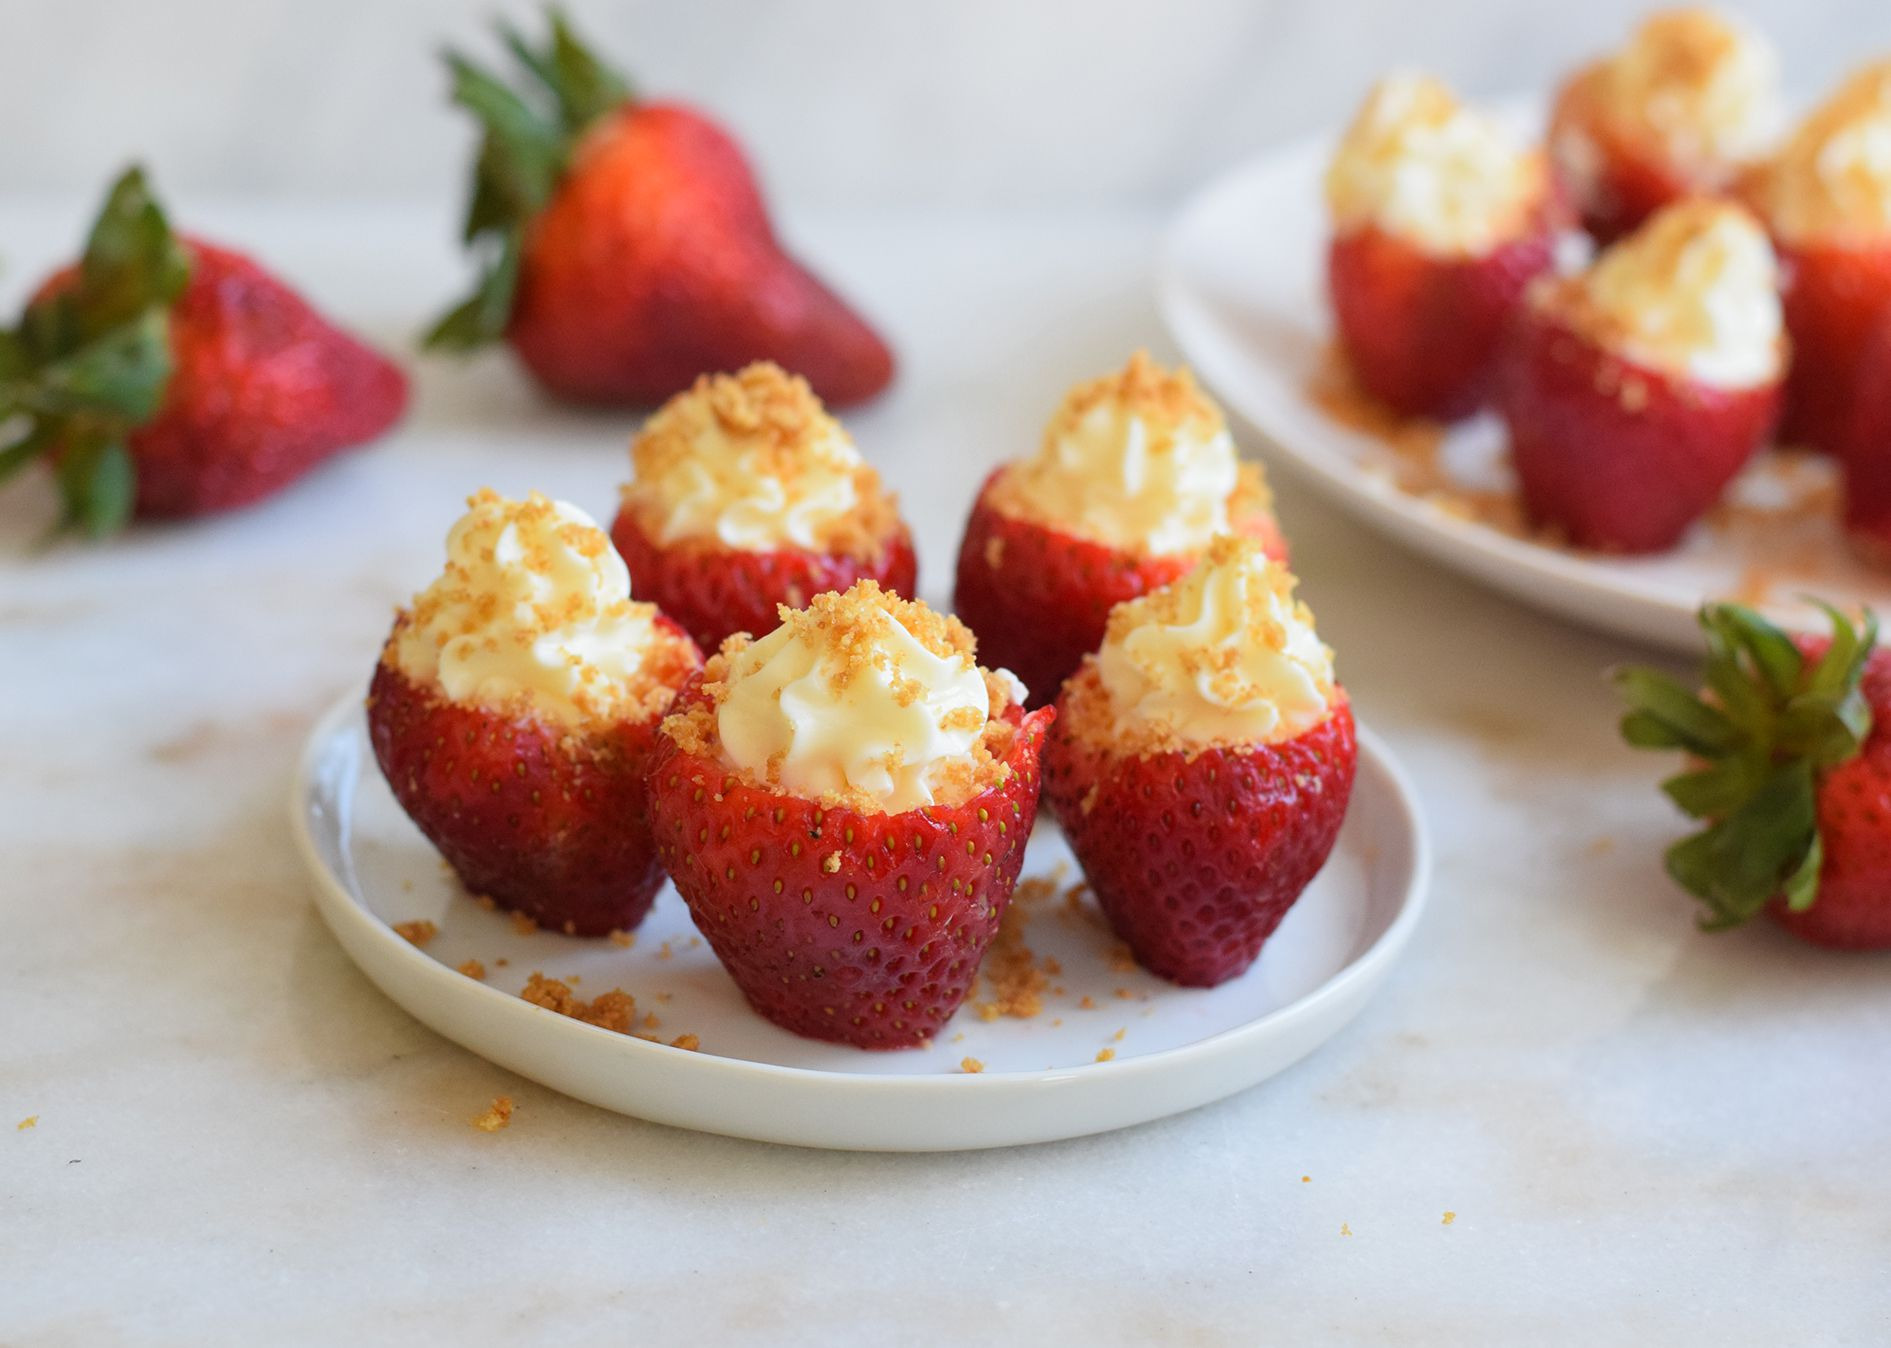 Cheesecake Stuffed Strawberries Are an Easy No-Bake Spring Dessert